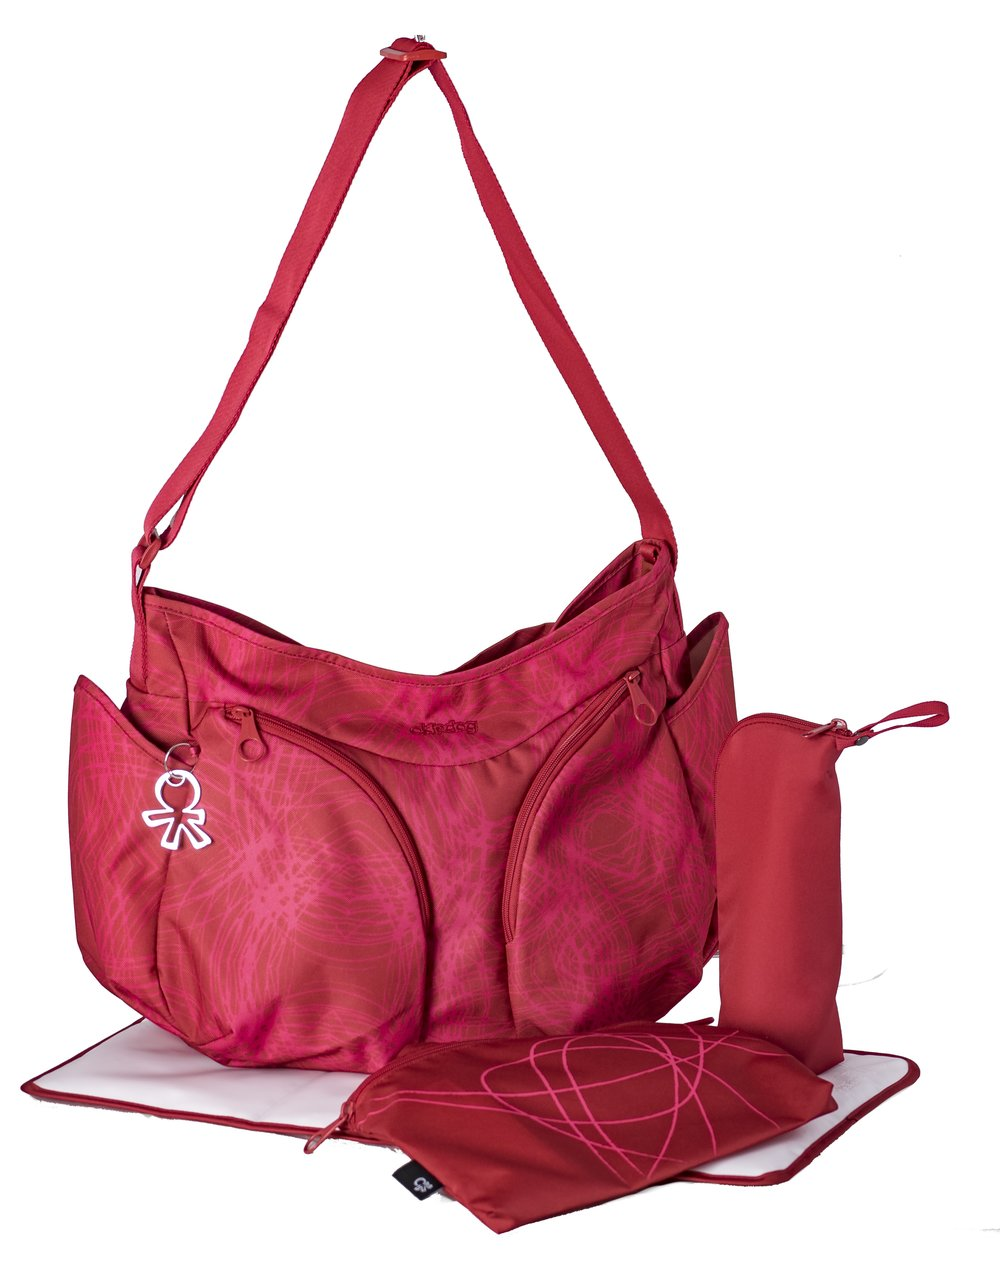 39022 Mondo Scribbles red accessories.jpg